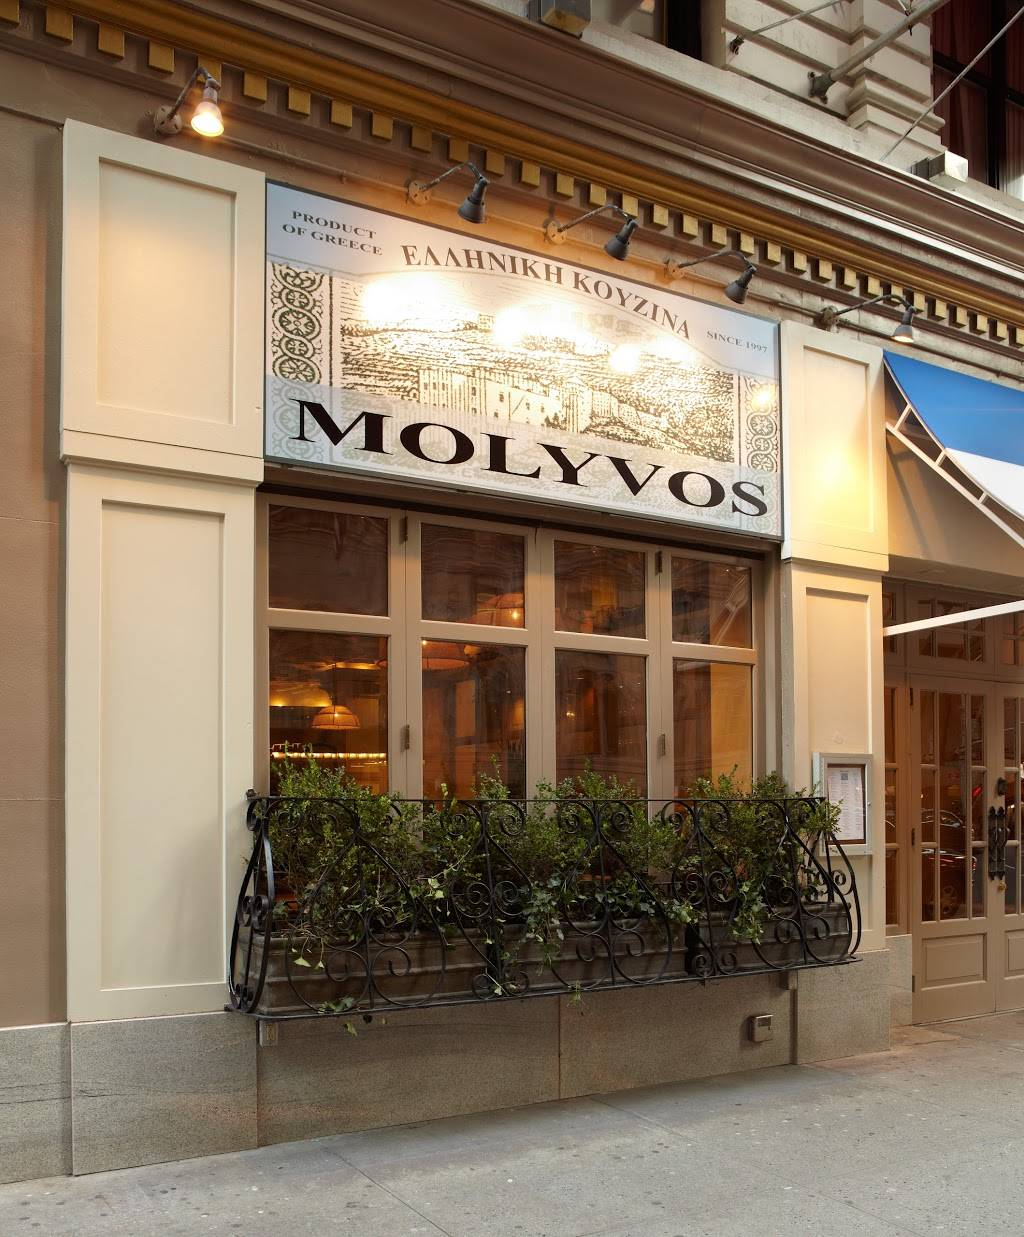 Molyvos | restaurant | 871 7th Ave, New York, NY 10019, USA | 2125827500 OR +1 212-582-7500